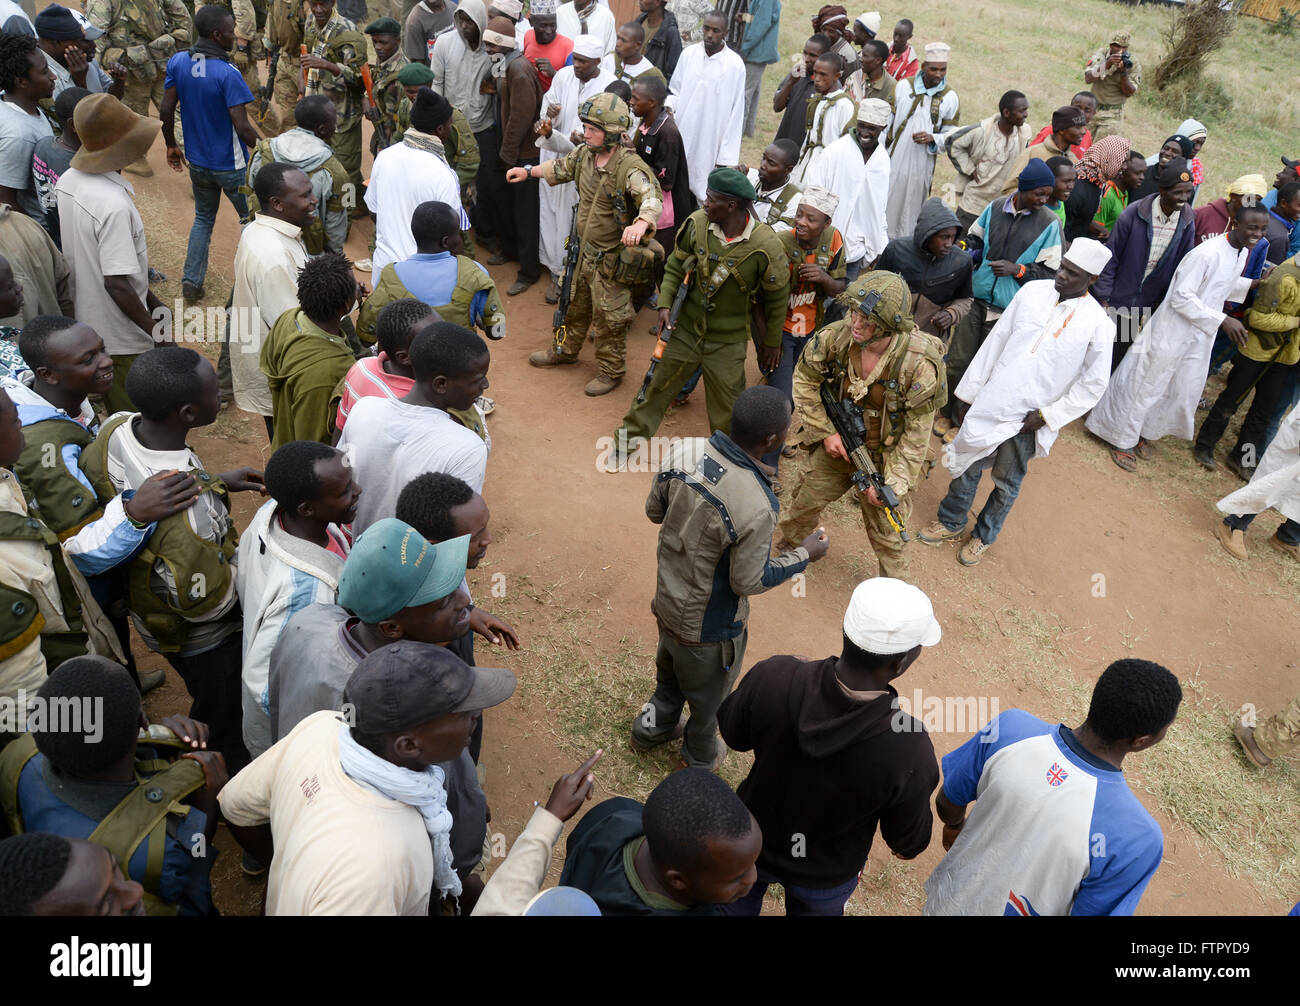 British Army training in crowd control in Kenya - Stock Image